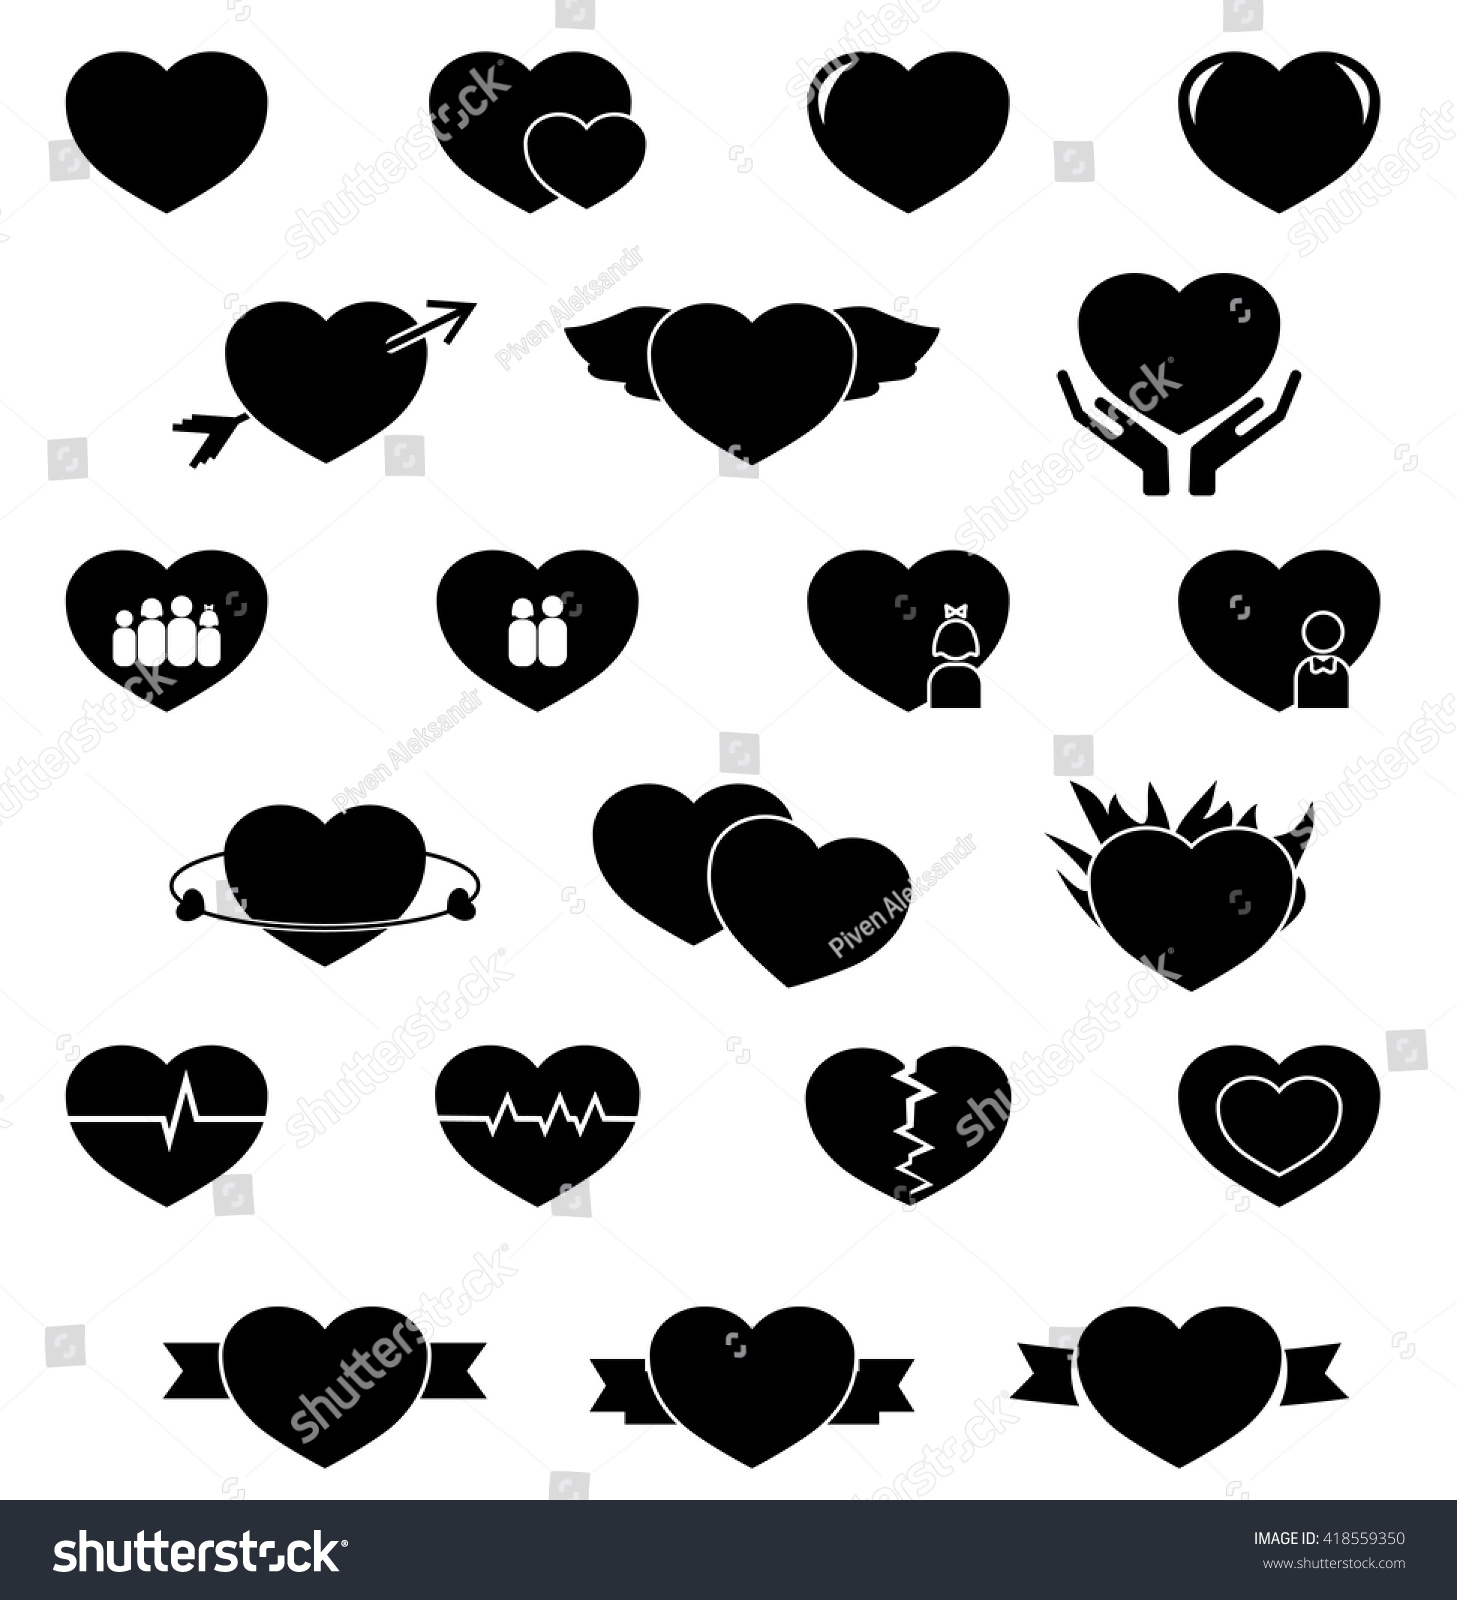 Set Hearts Black Vector Icons Heart 418559350